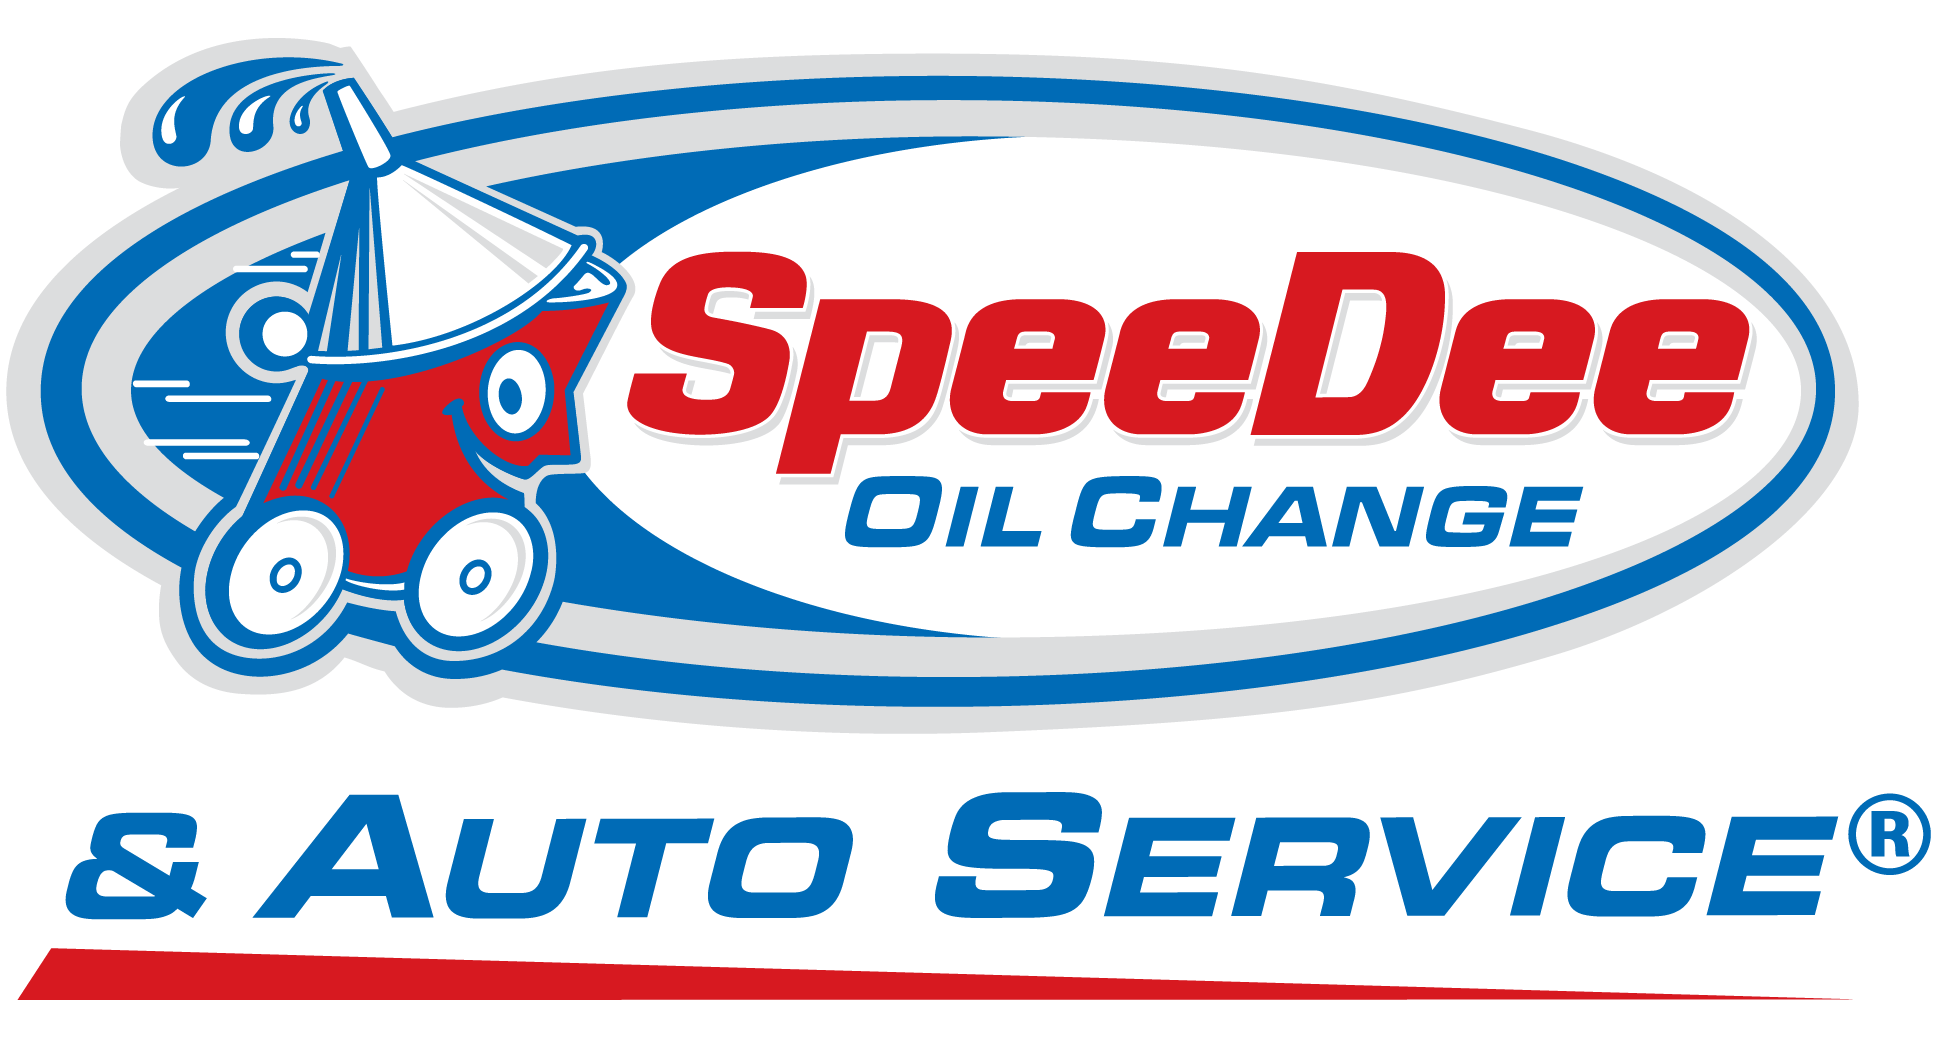 SpeeDee Oil Change & Auto Service®